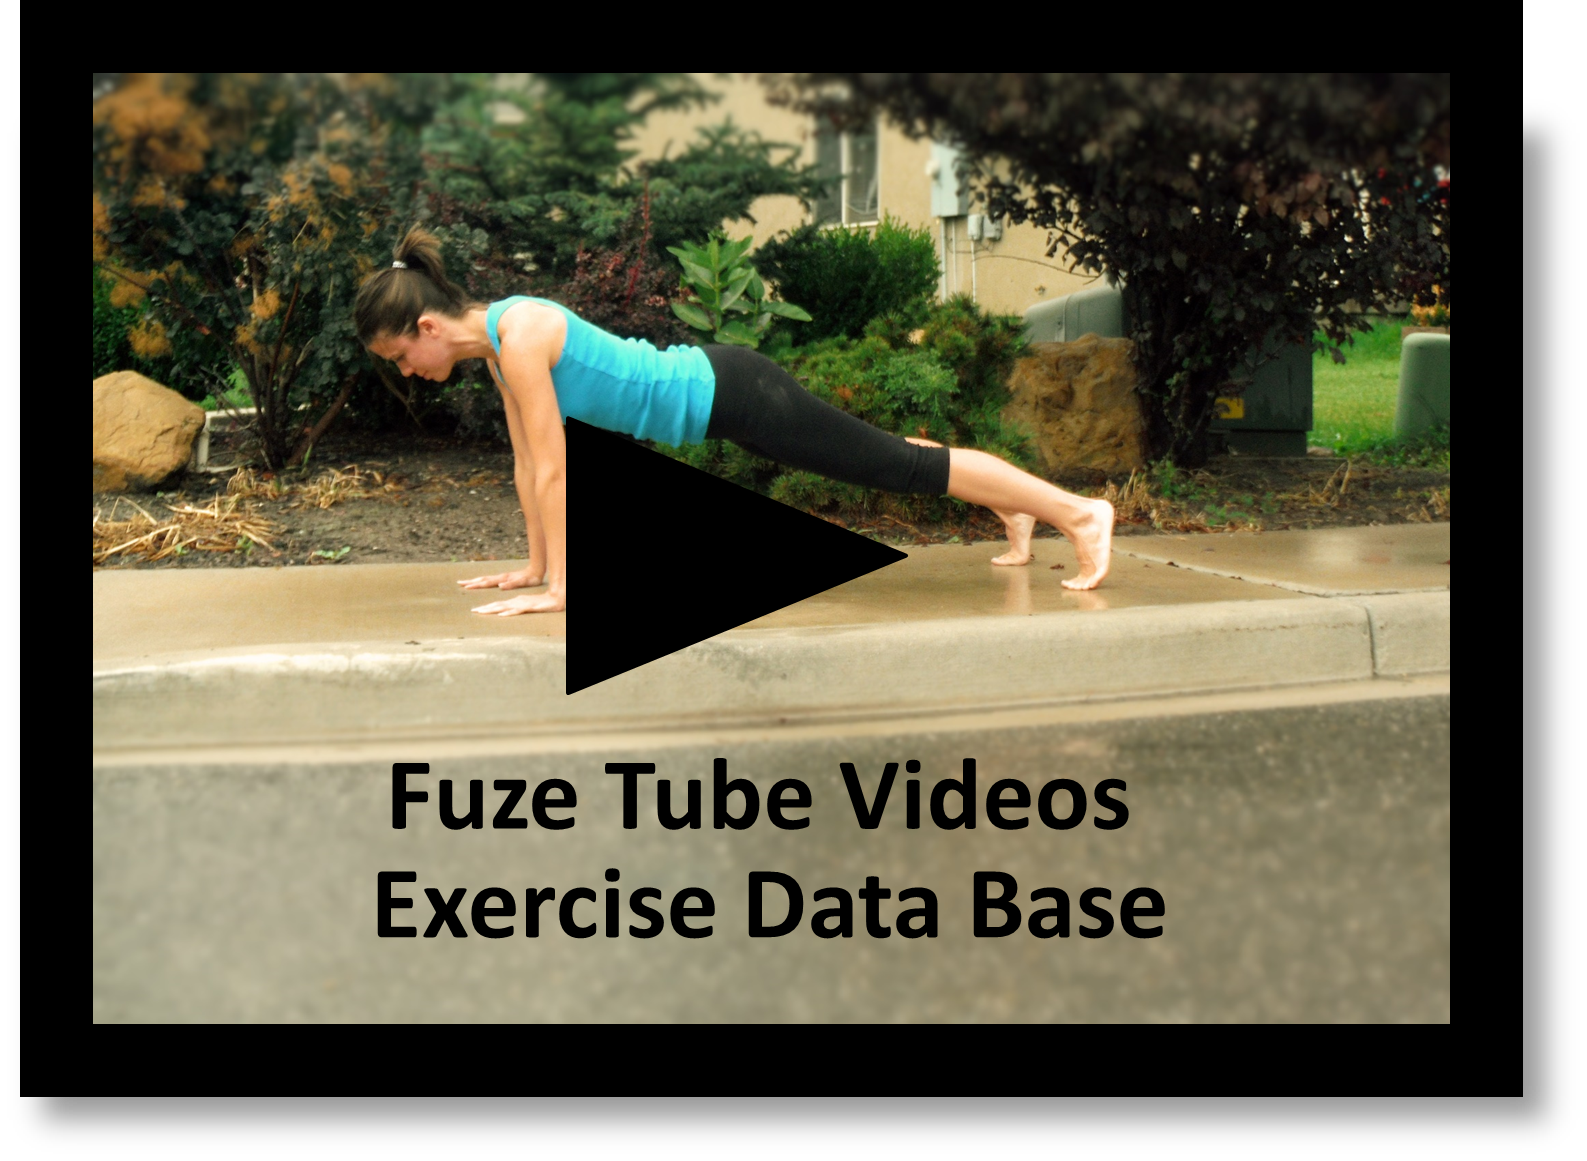 Fuze Tube Exercise Data Base